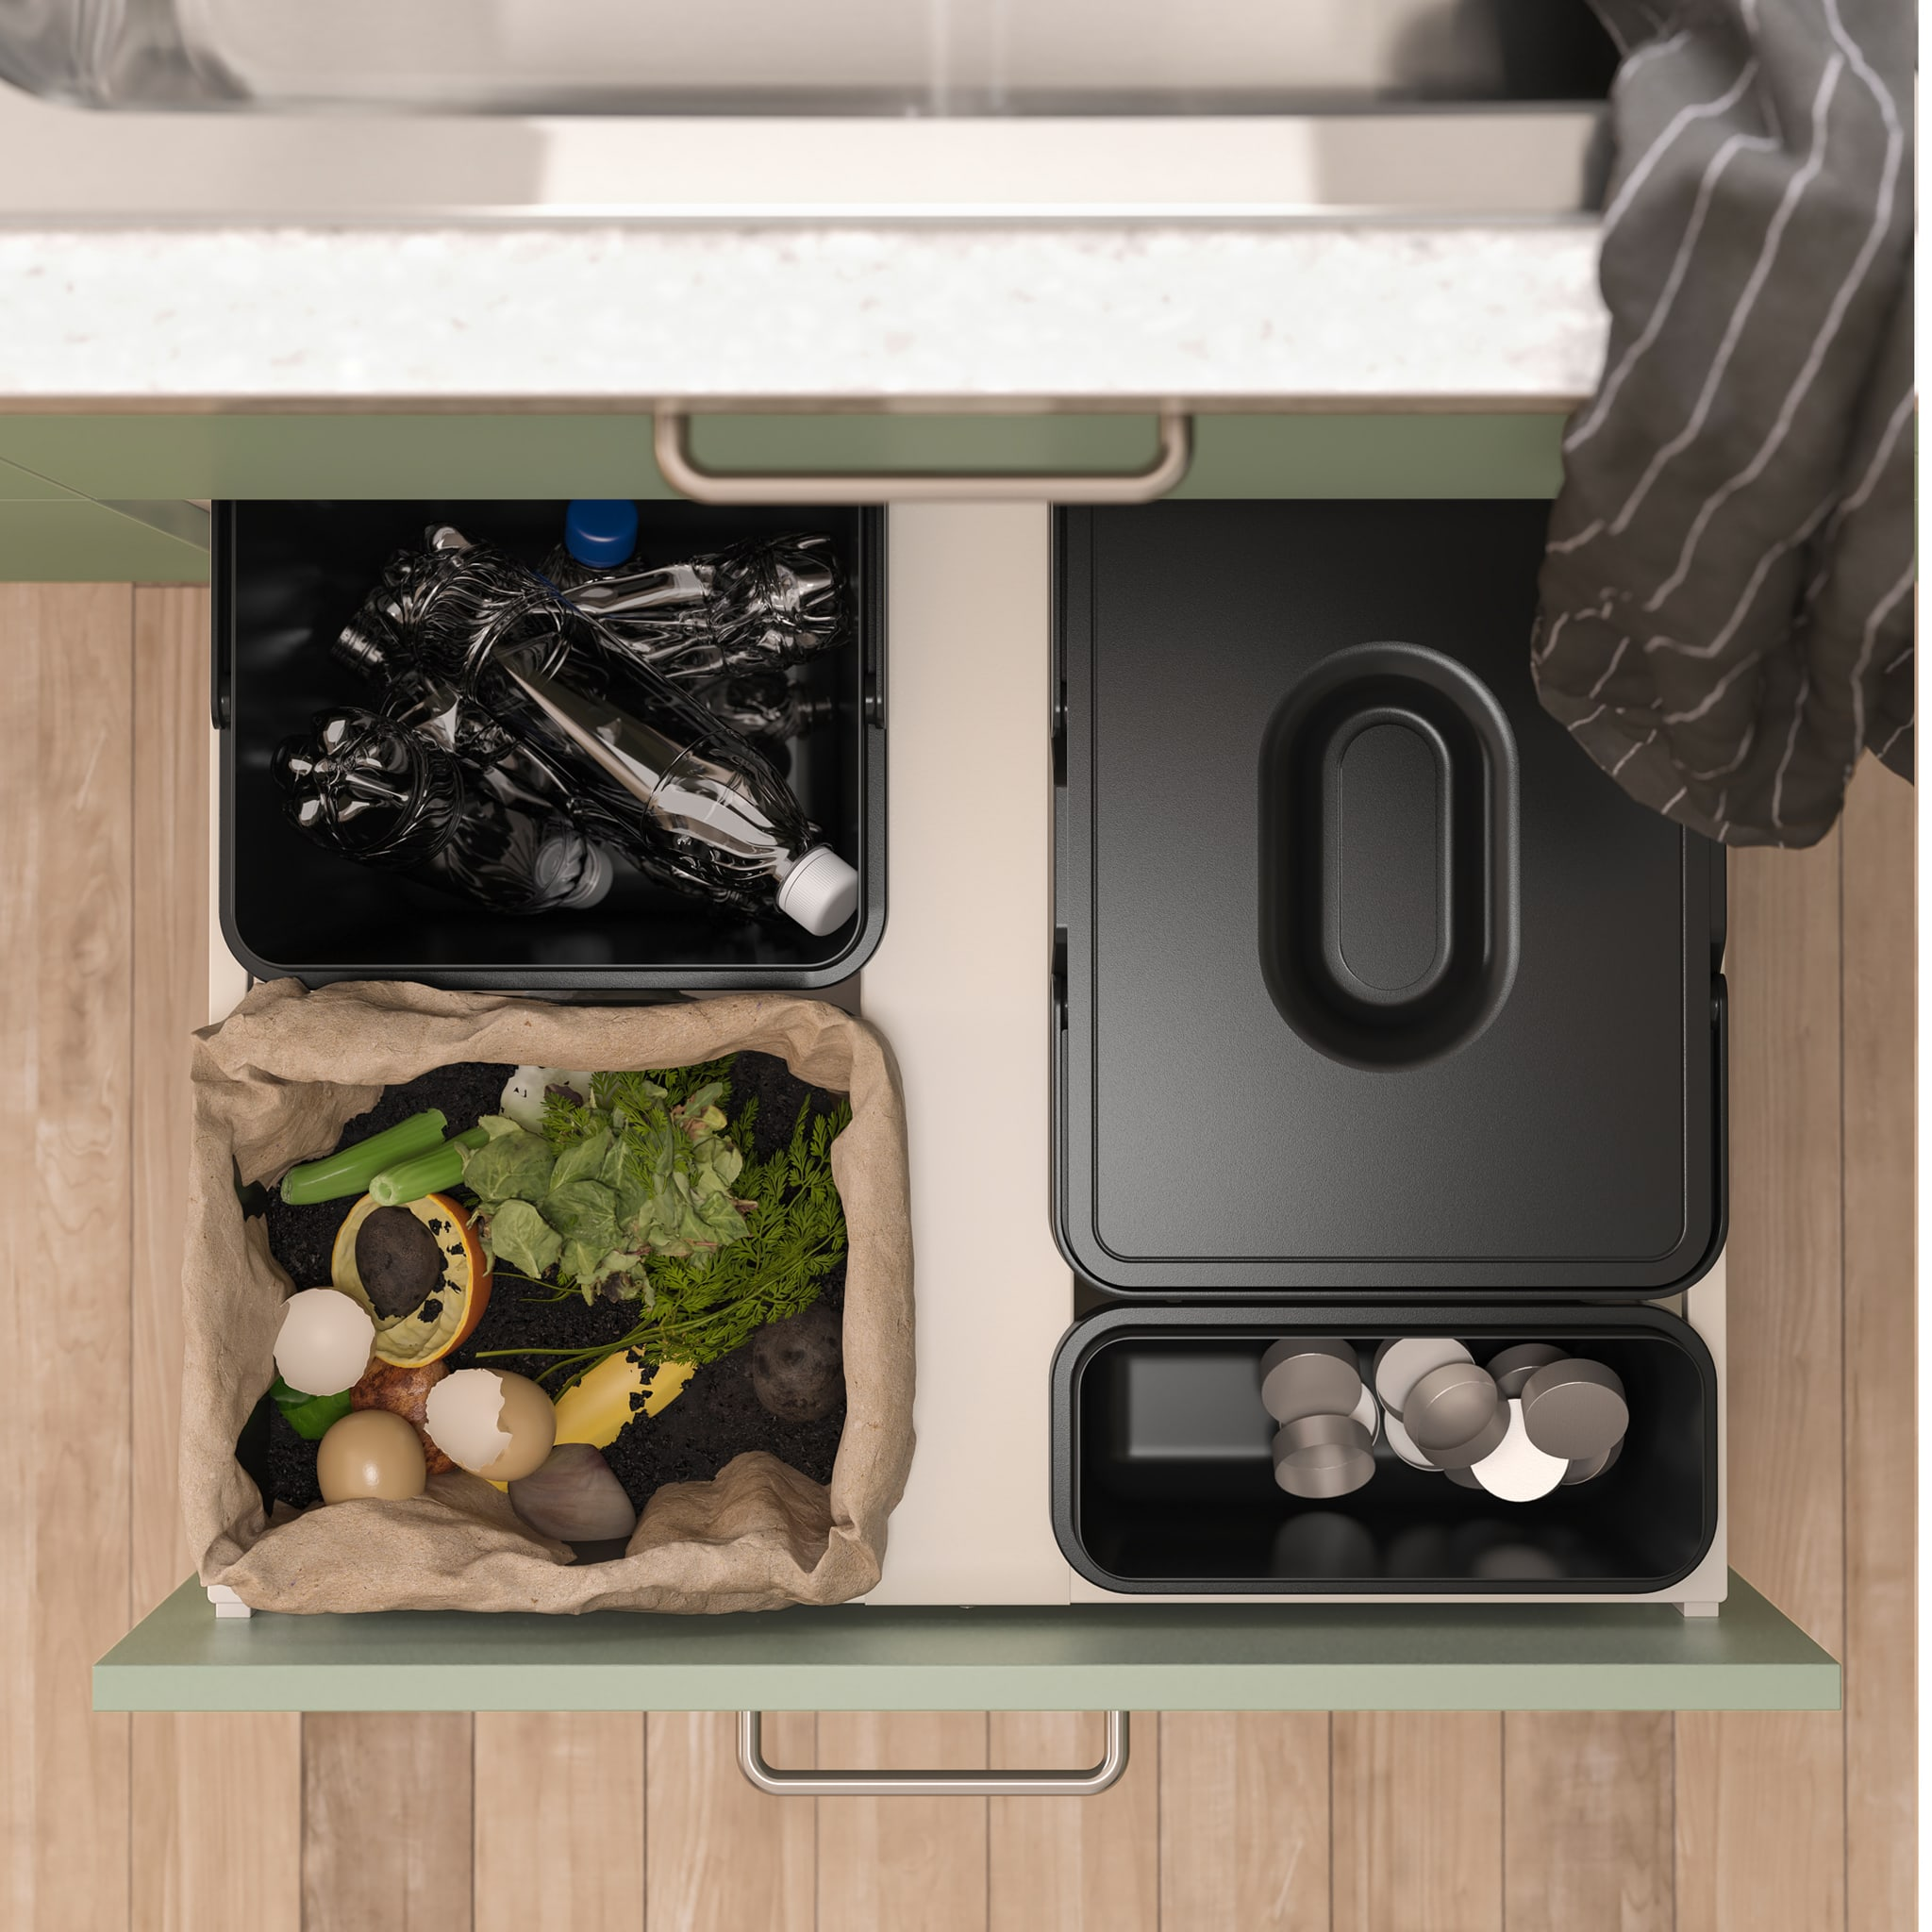 Seen from above is an open kitchen drawer with black waste sorting bins inside. Different kinds of waste is sorted in them.